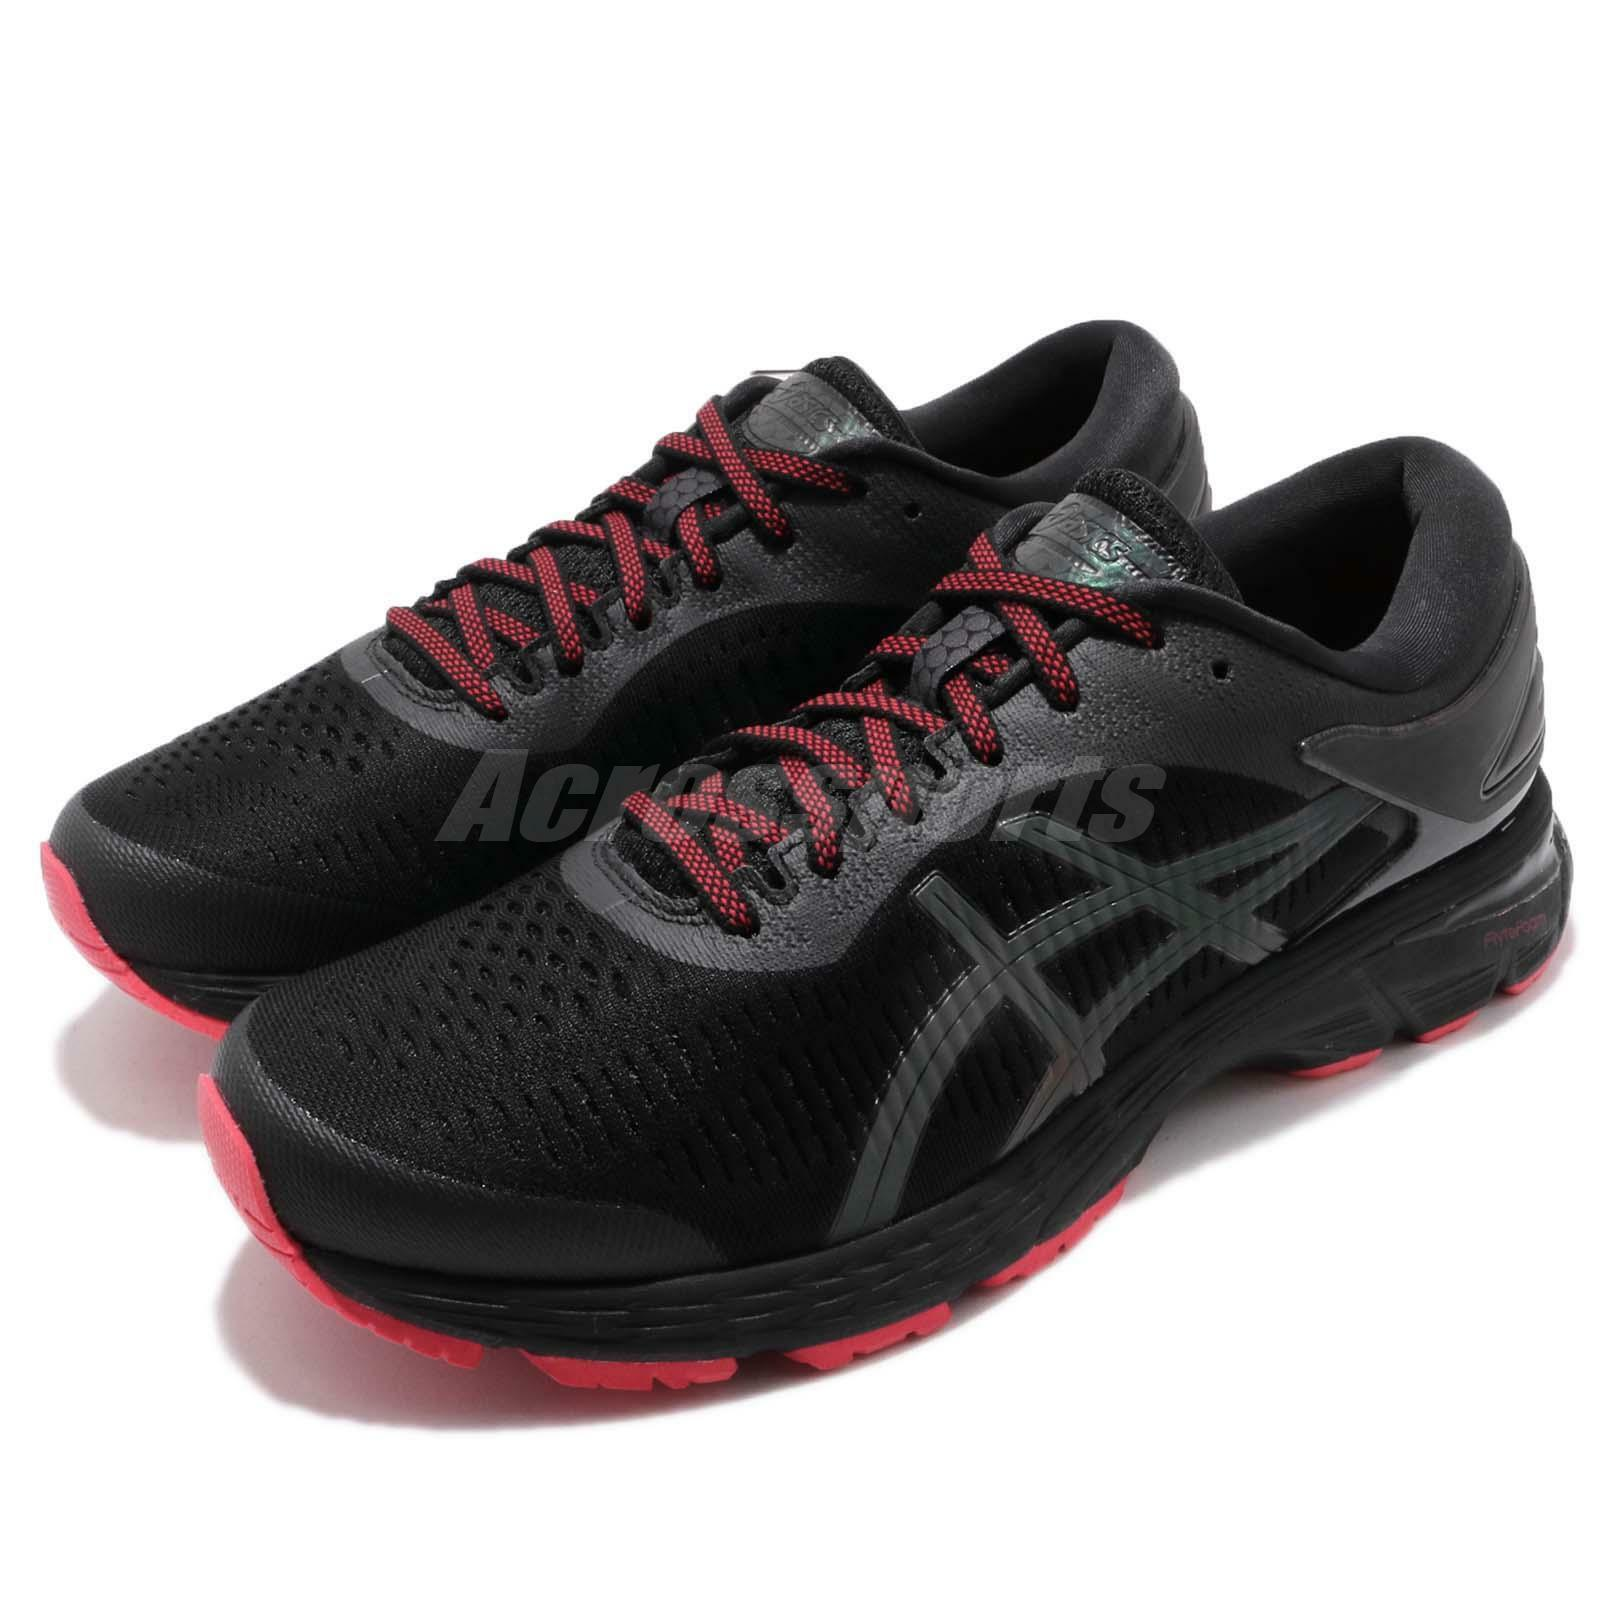 Asics Gel-Kayano 25 Lite-Show Shoes Black Reflective Men Running Shoes Lite-Show 1011A022-001 2fe0d6